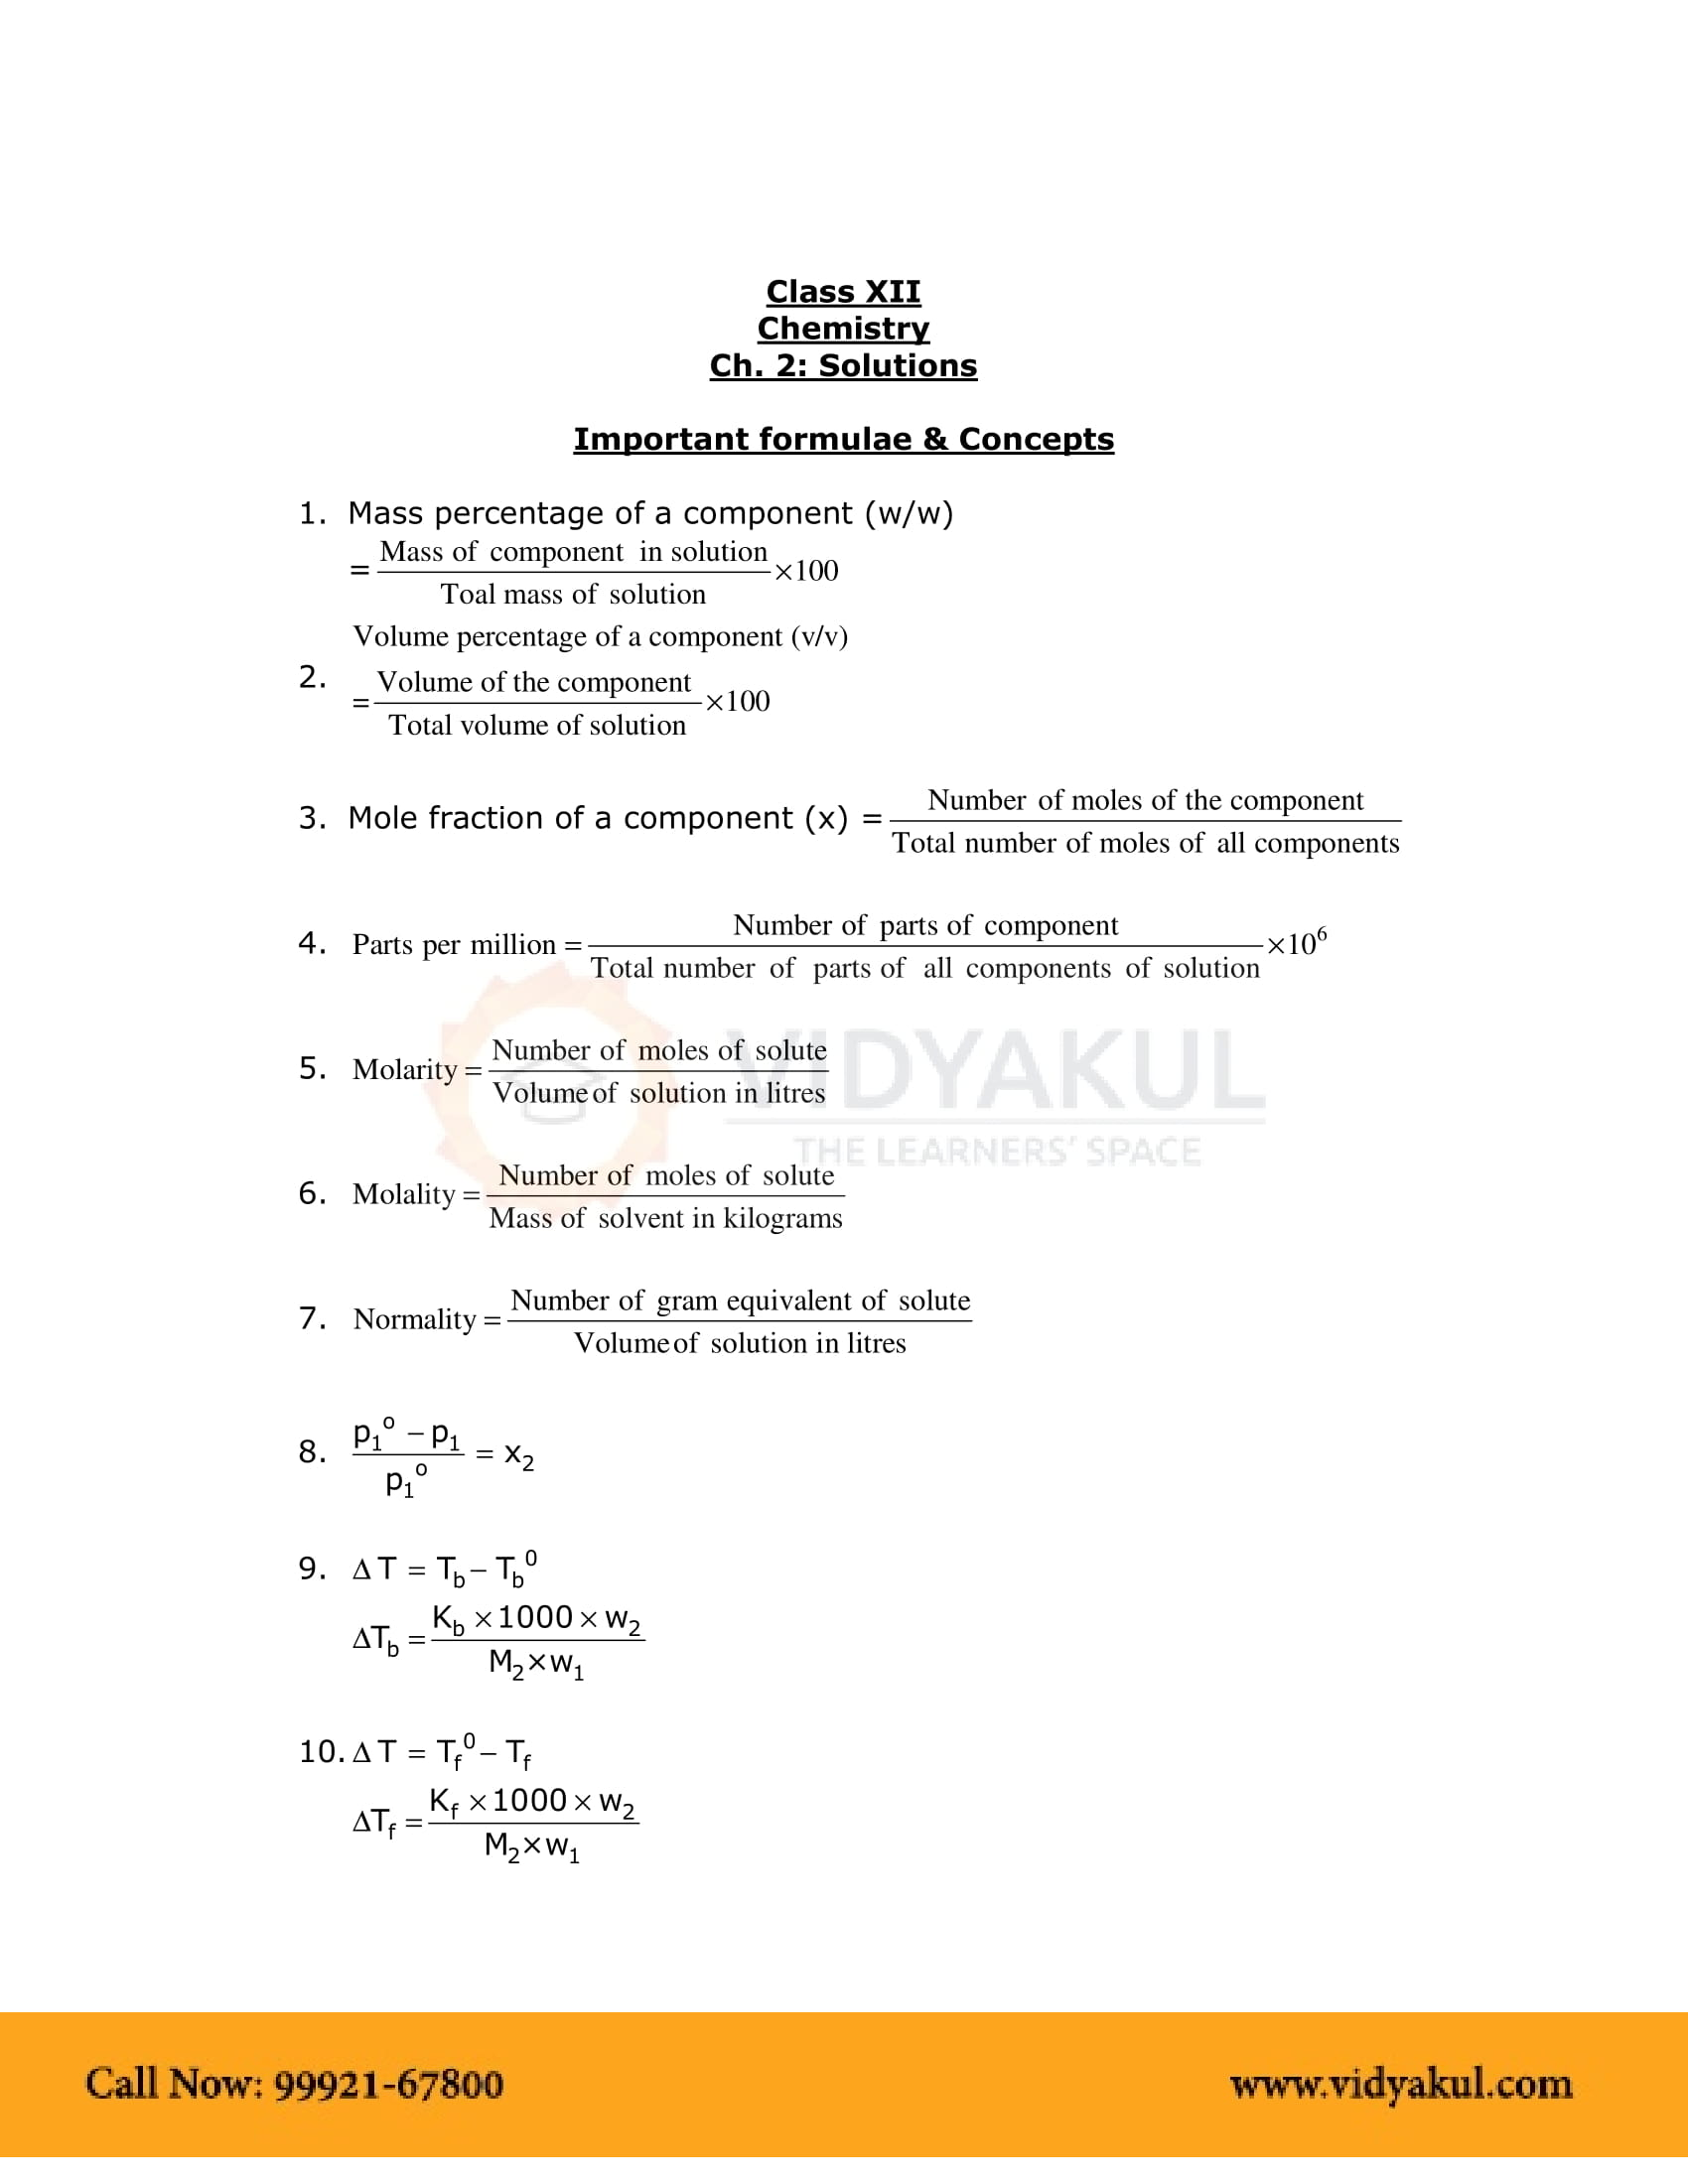 Solutions Class 12 Notes | Vidyakul